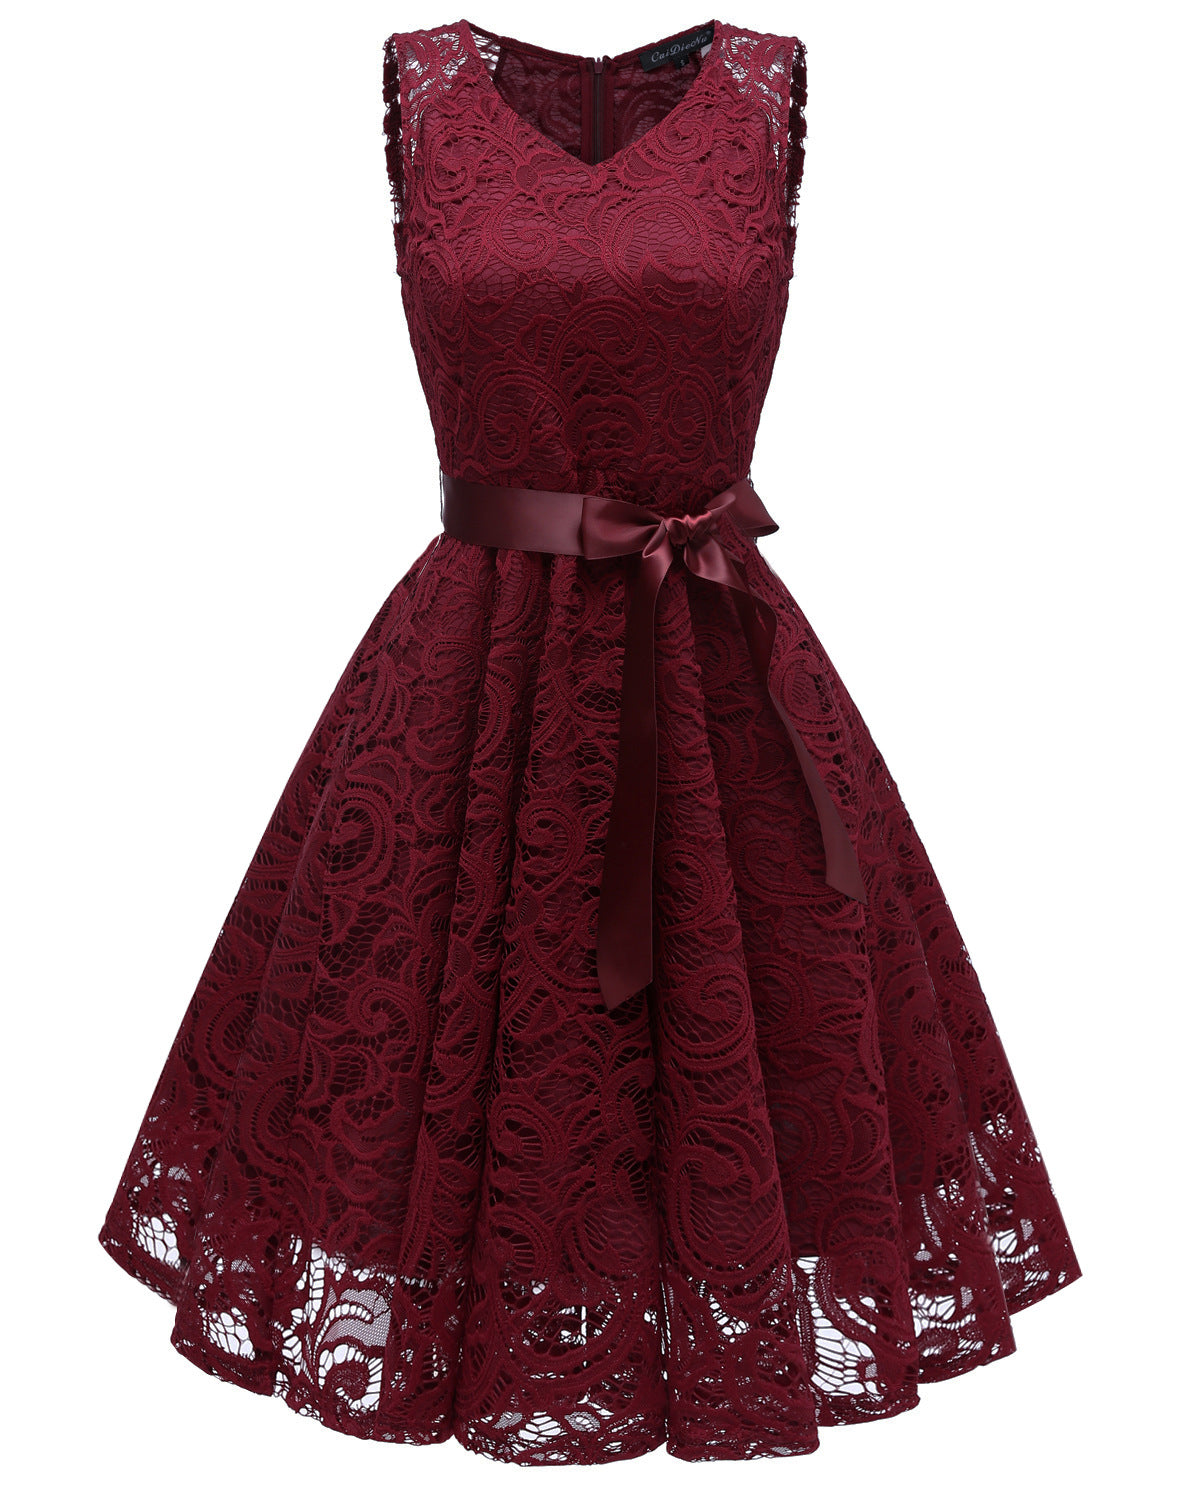 Lace Patchwork Vintage Dress